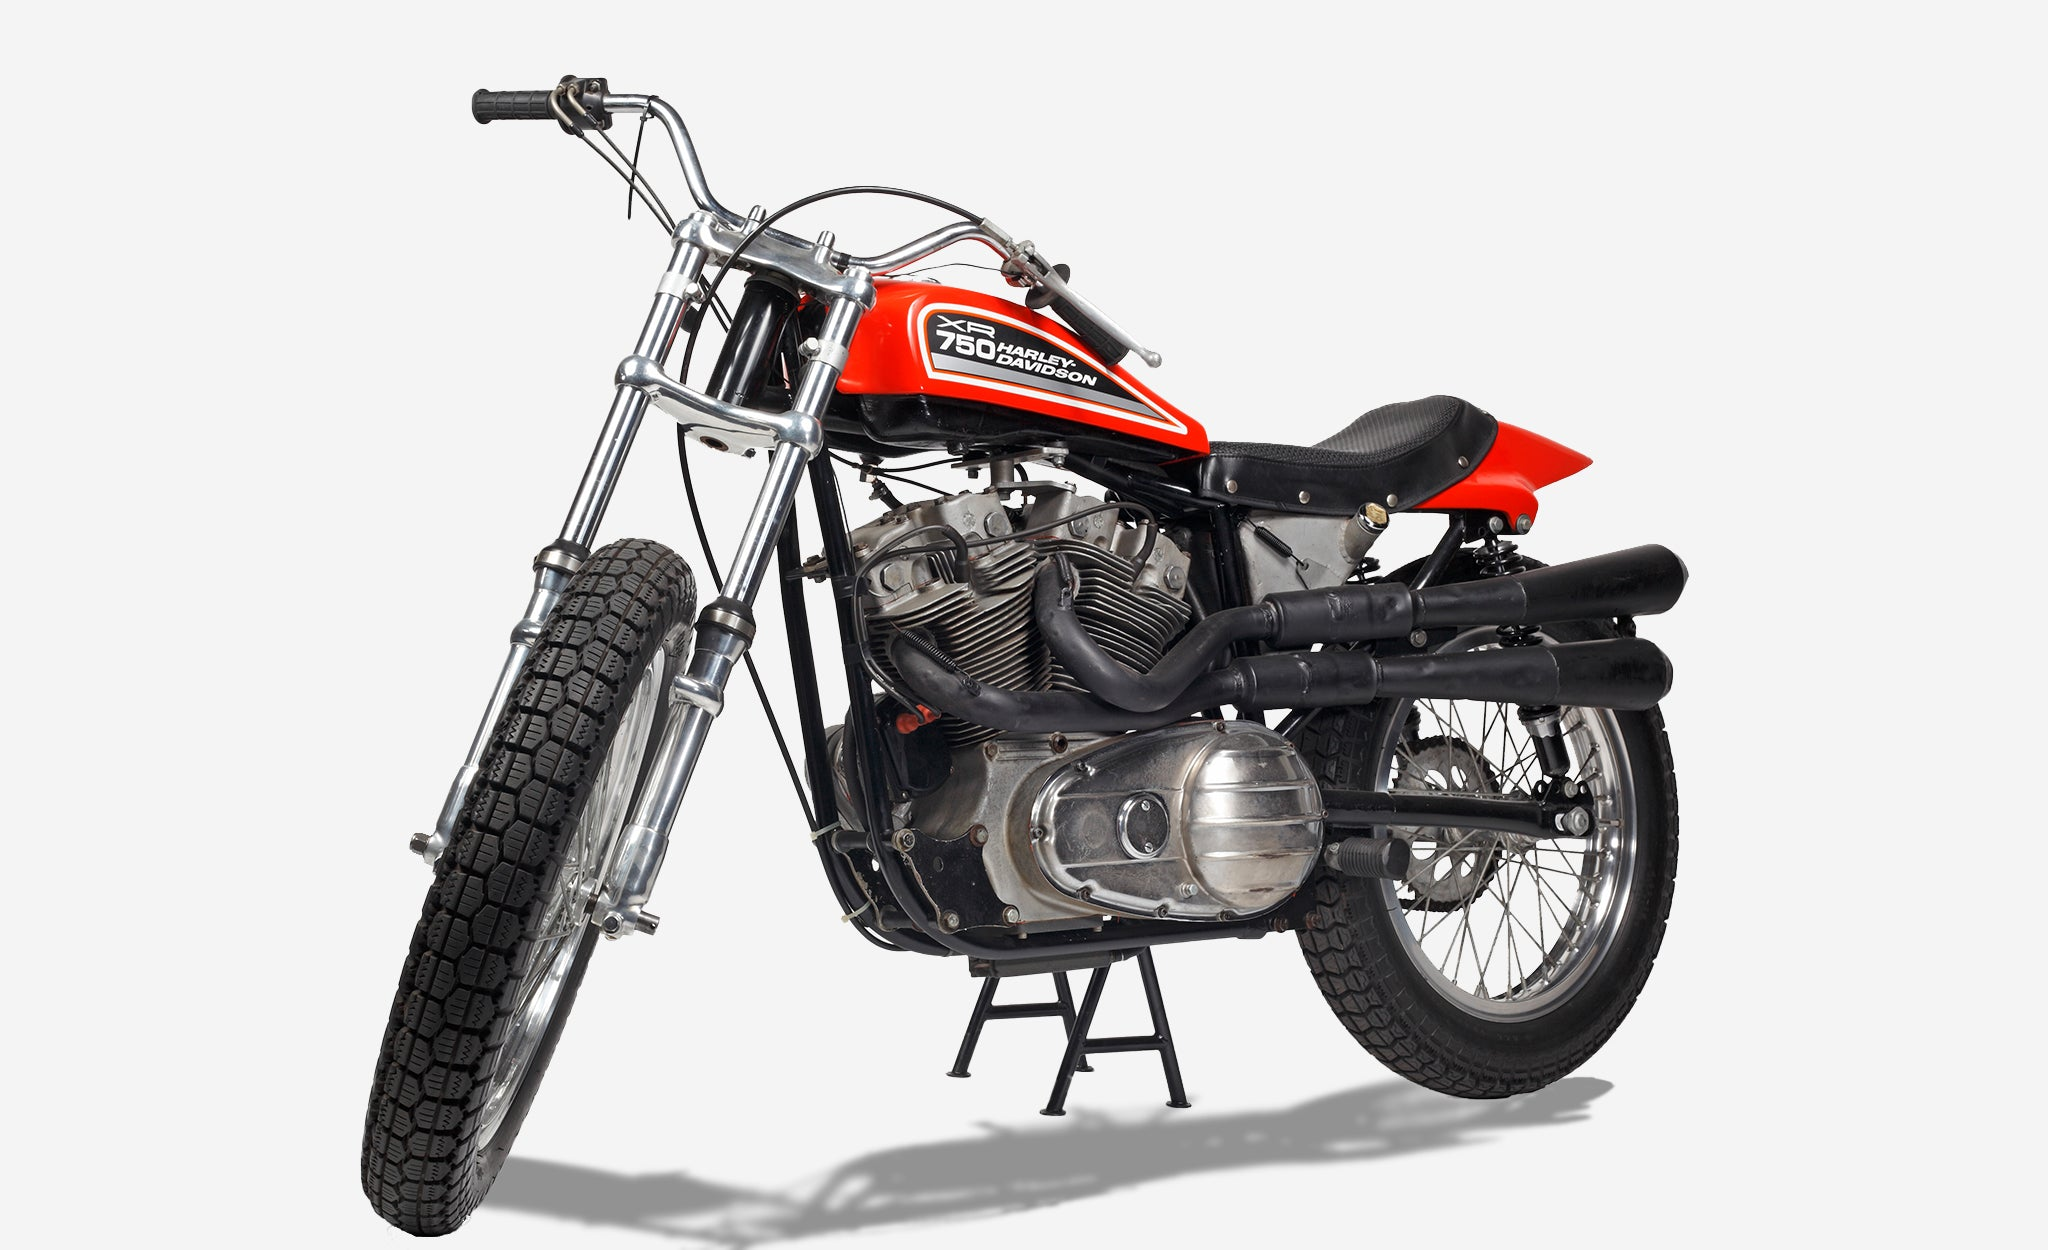 Harley Davidson XR750 motorcycle in red